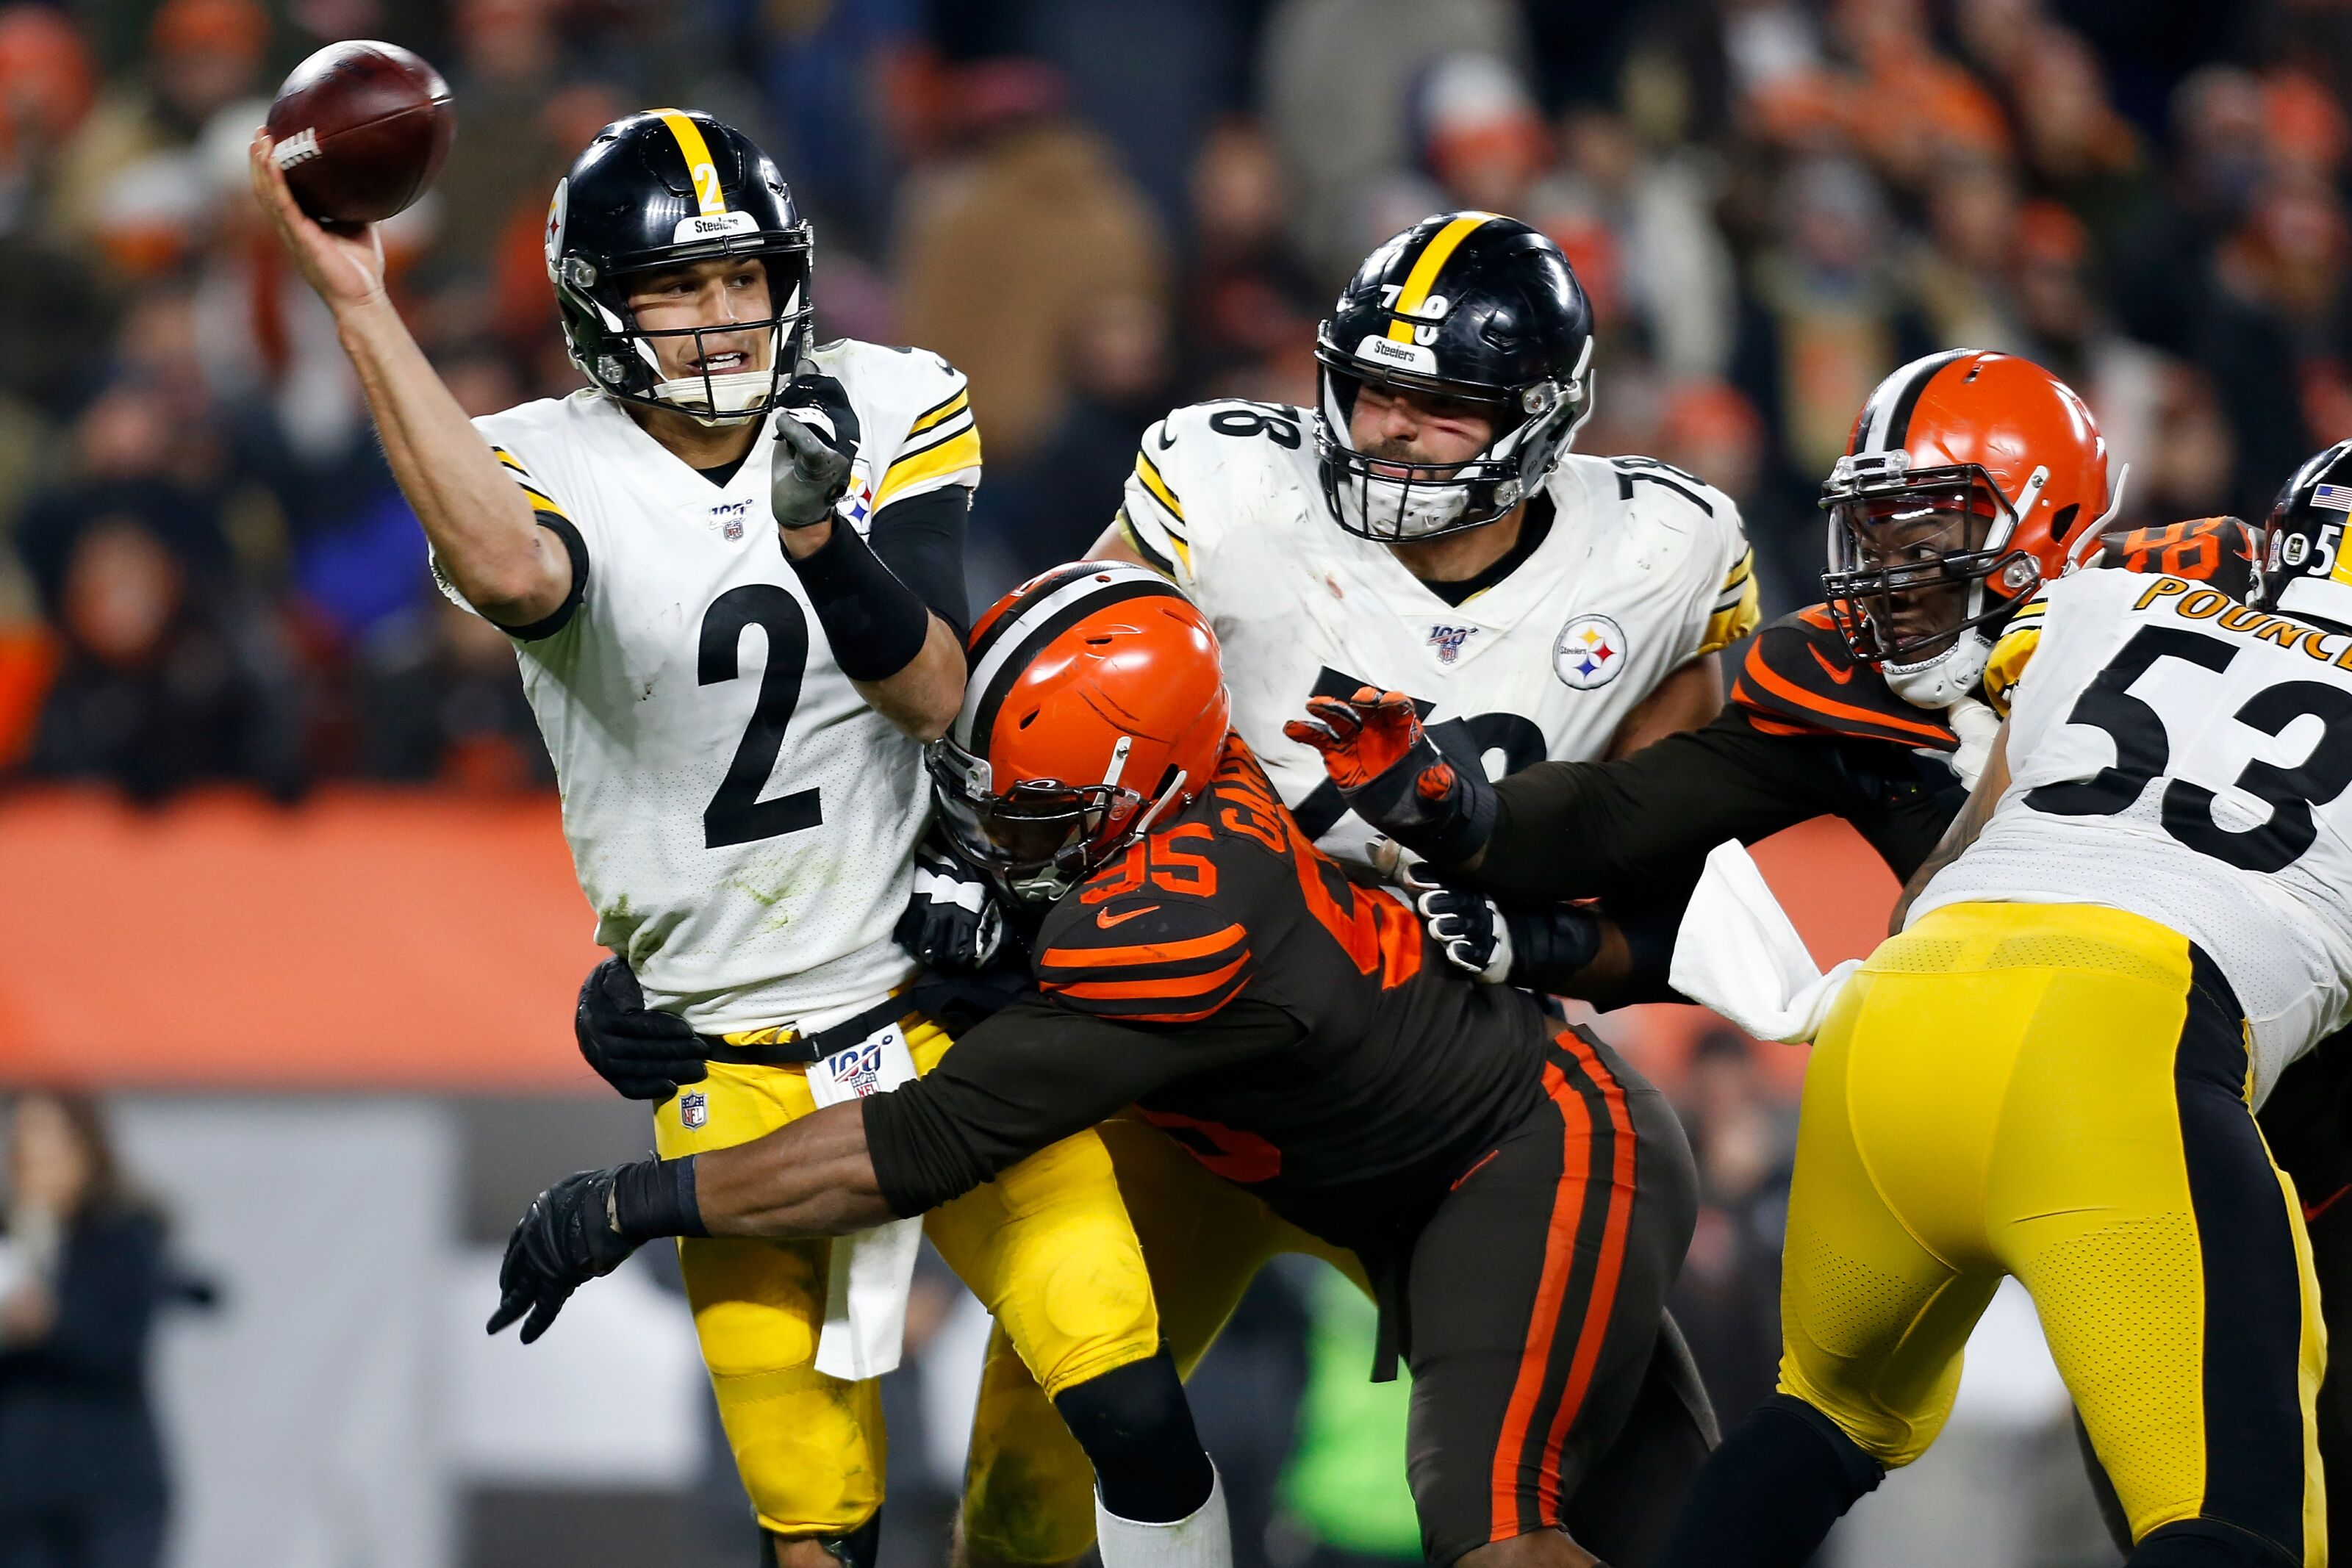 Cleveland Browns were the bully, not the bullied against the Steelers